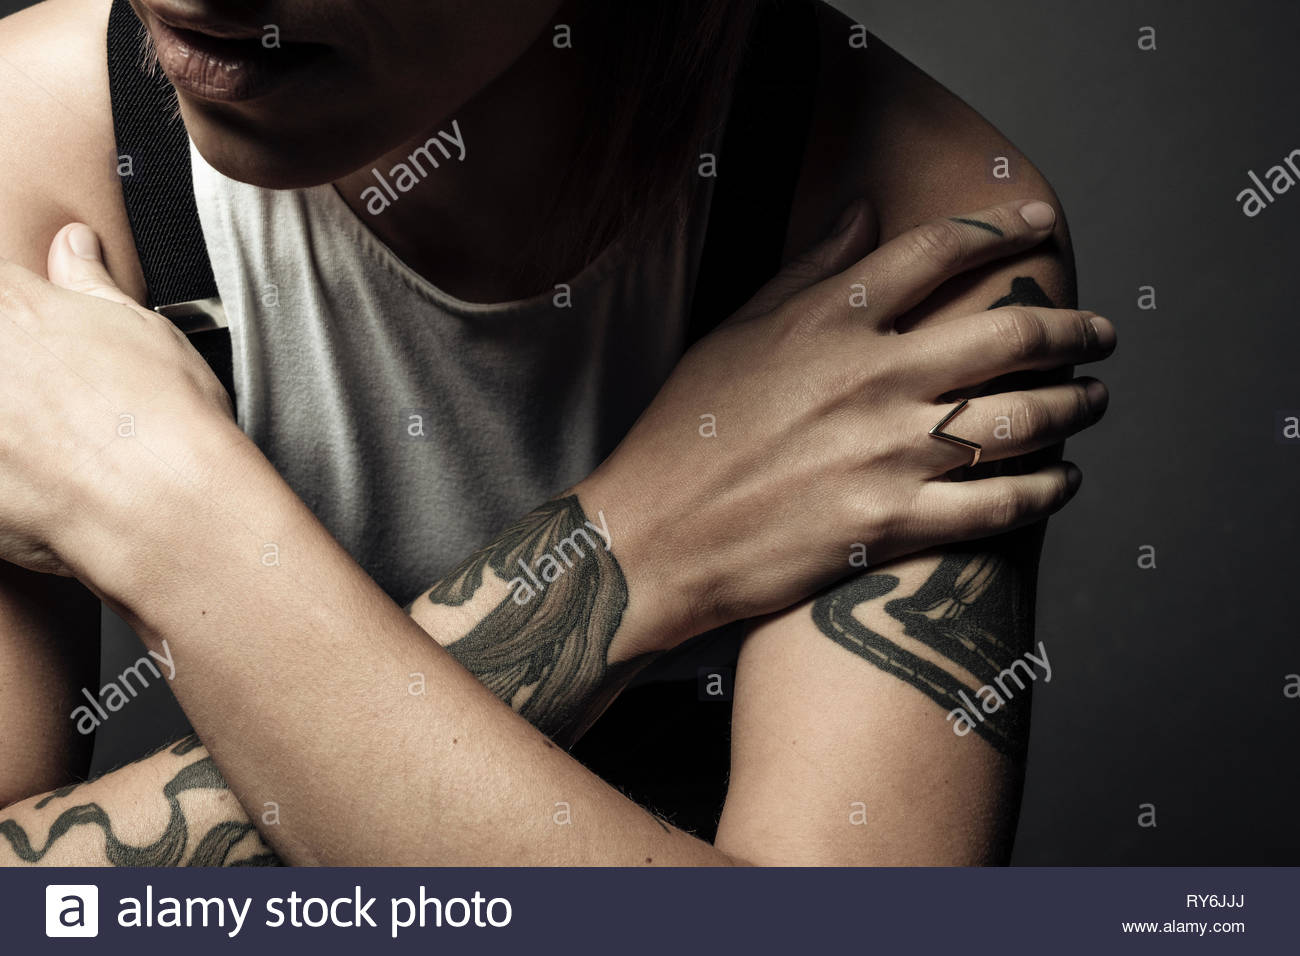 Close up non-binary gender person with tattooed arms - Stock Image